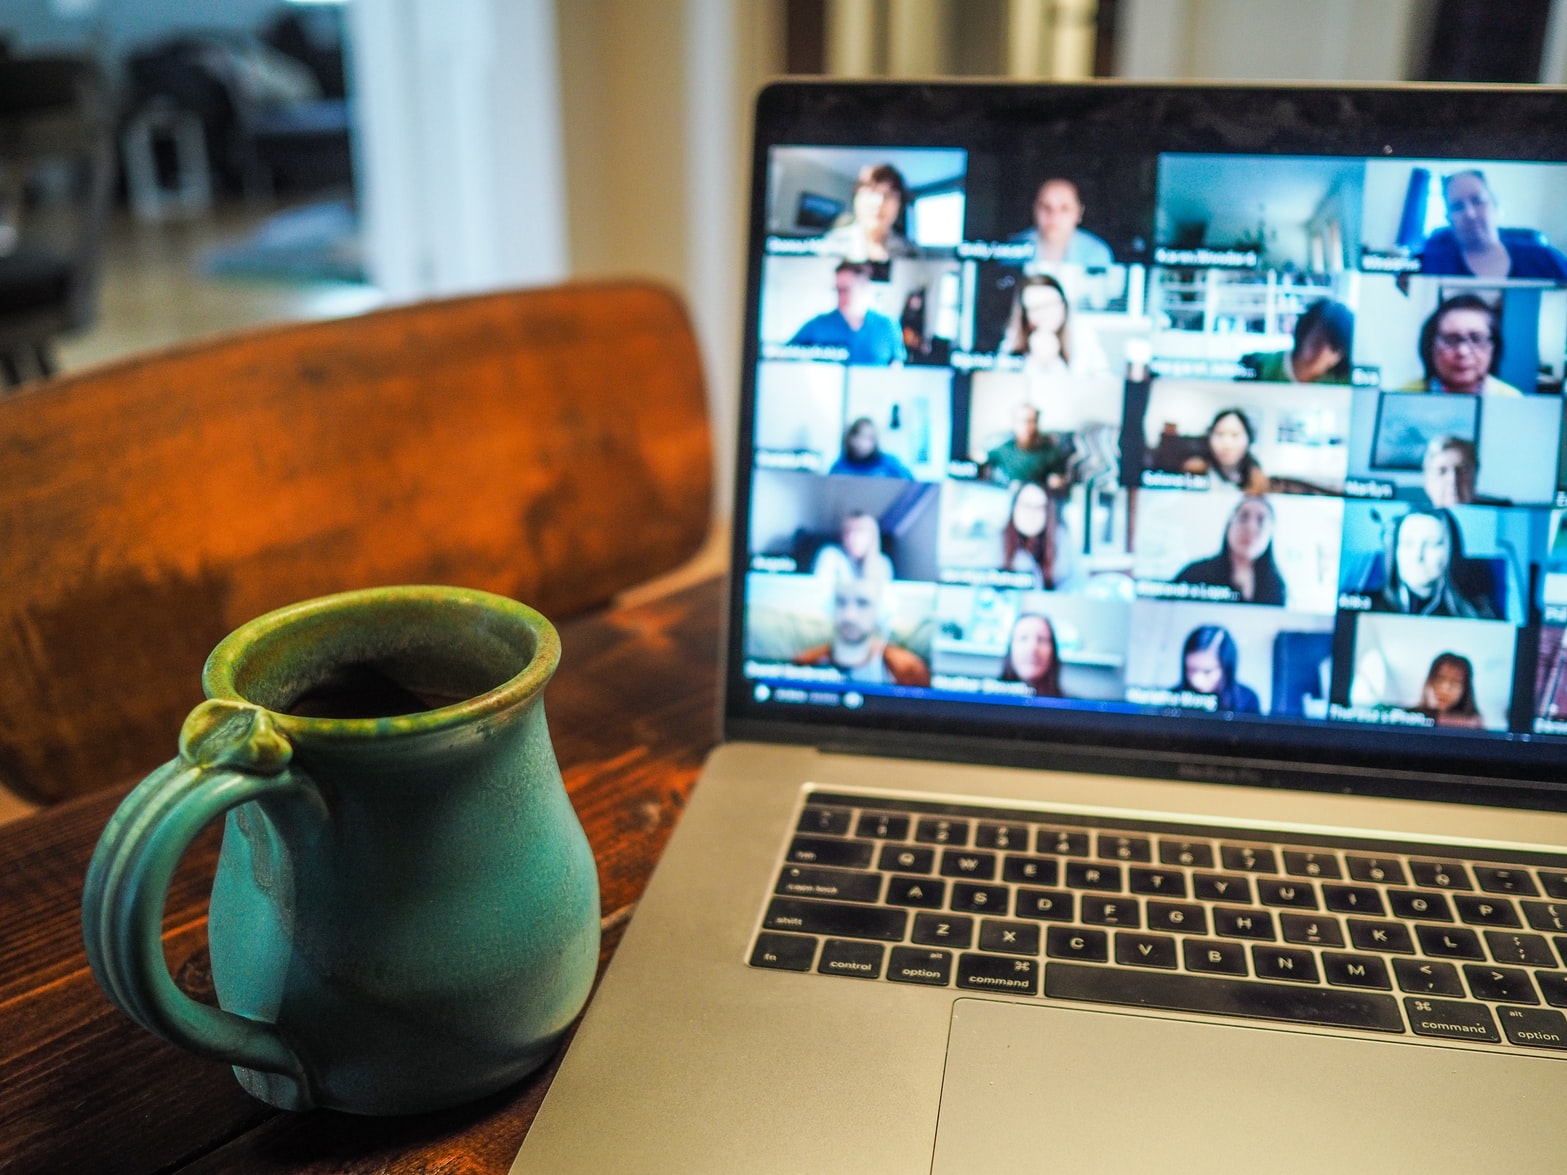 An image of a virtual meeting being held over Zoom on a personal laptop.